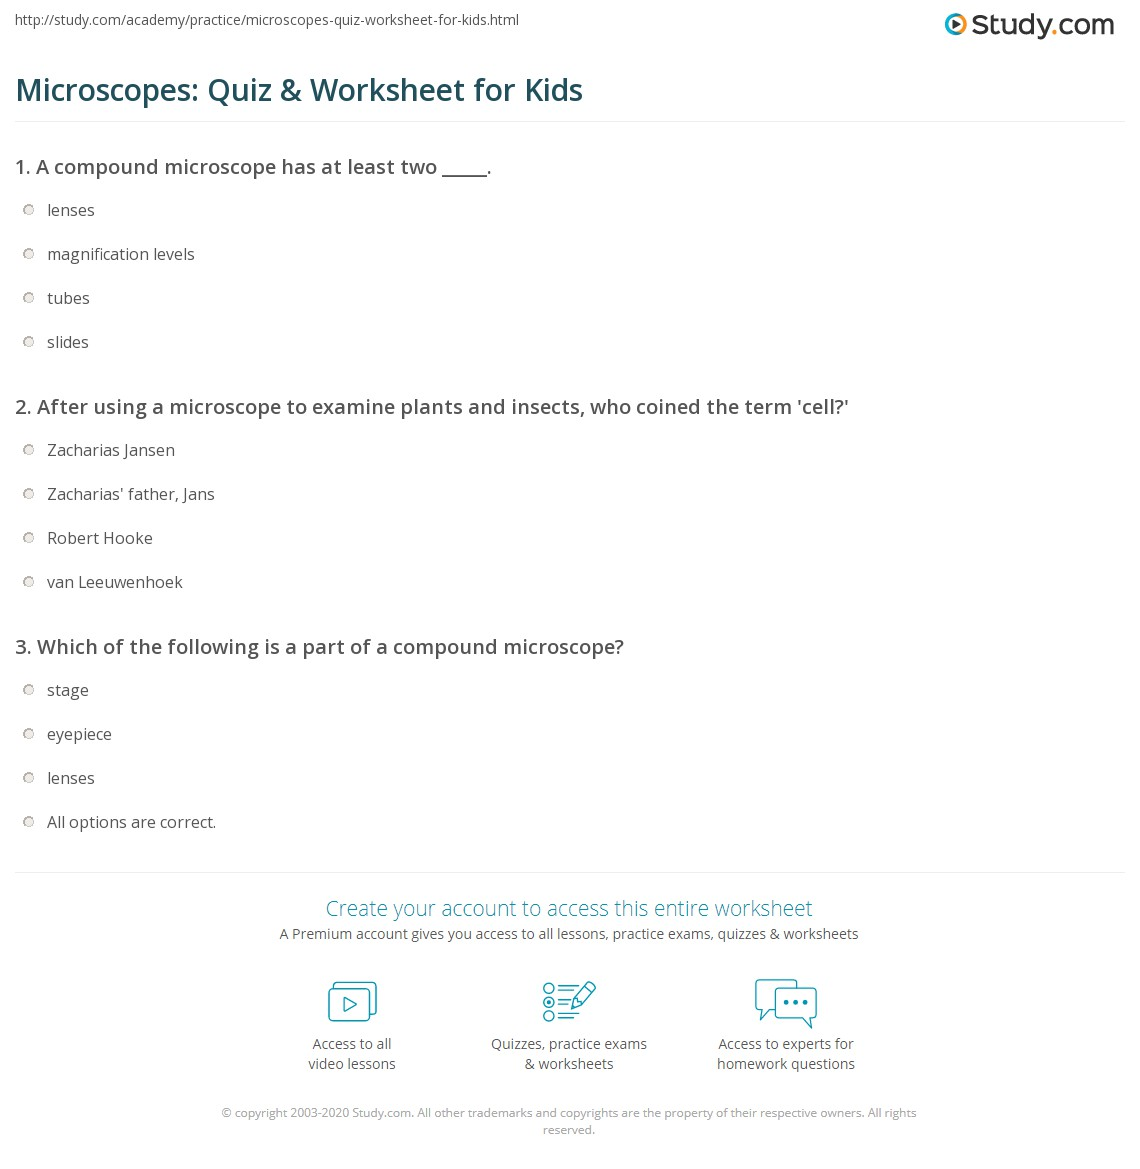 Worksheets Microscope Worksheets microscopes quiz worksheet for kids study com print microscope lesson history facts worksheet